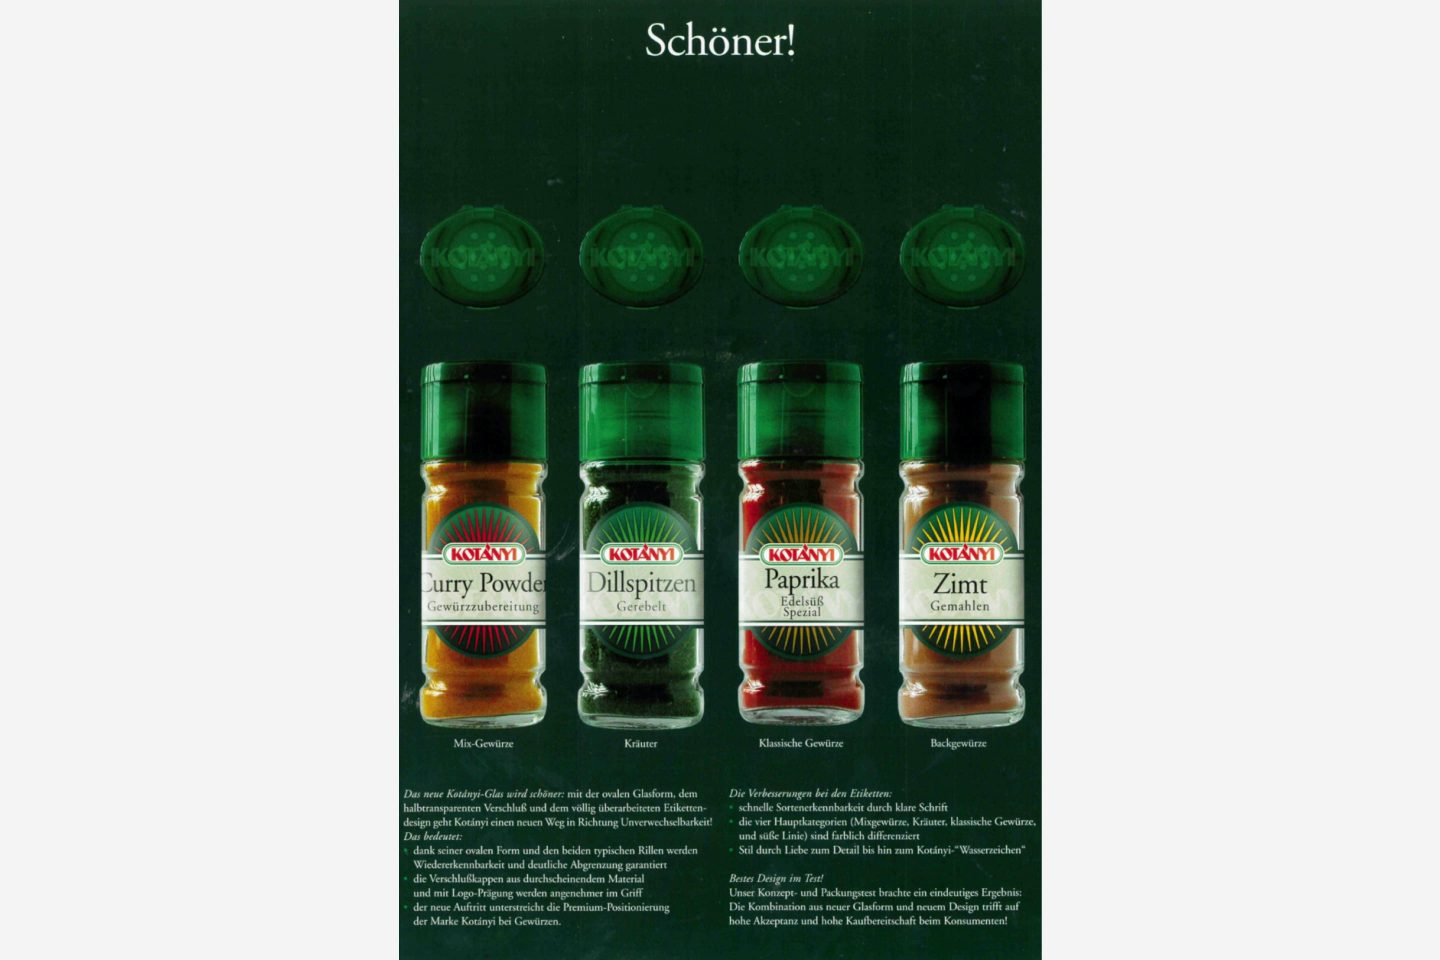 Kotányi advertising poster for spice in glasses from the 2000s